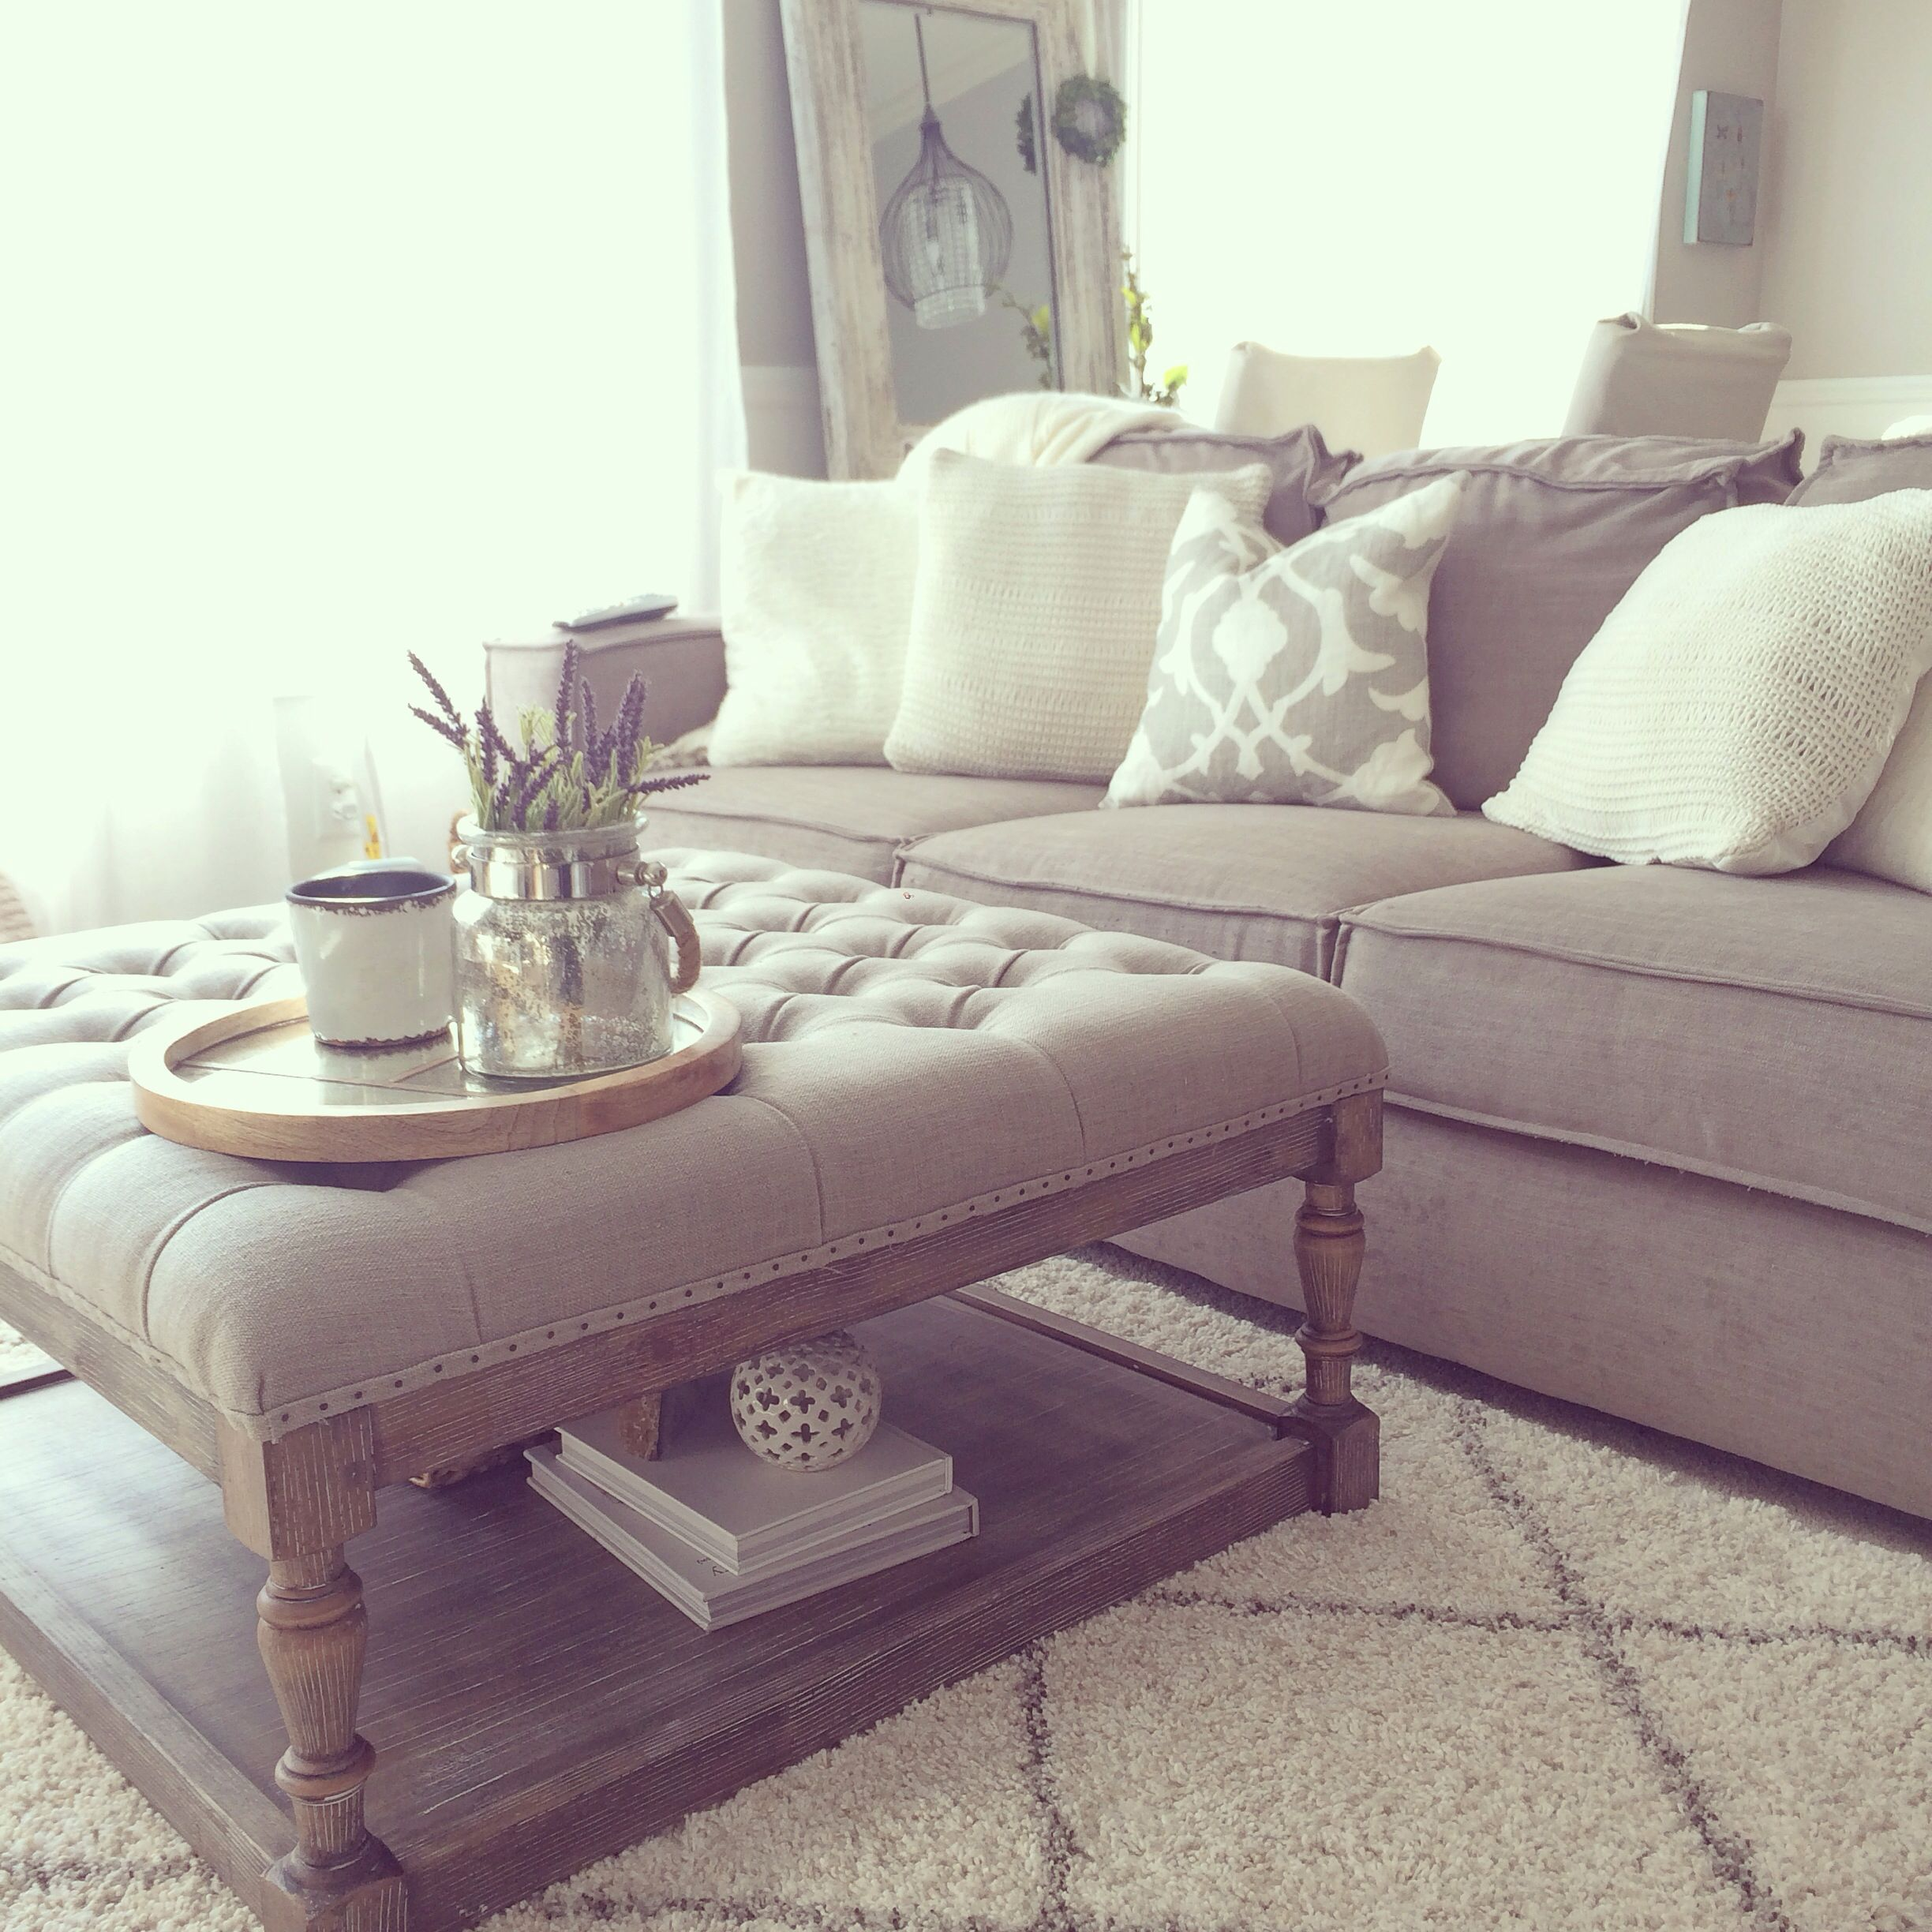 Overstock tufted ottoman - living room  | DIY & Crafts ...